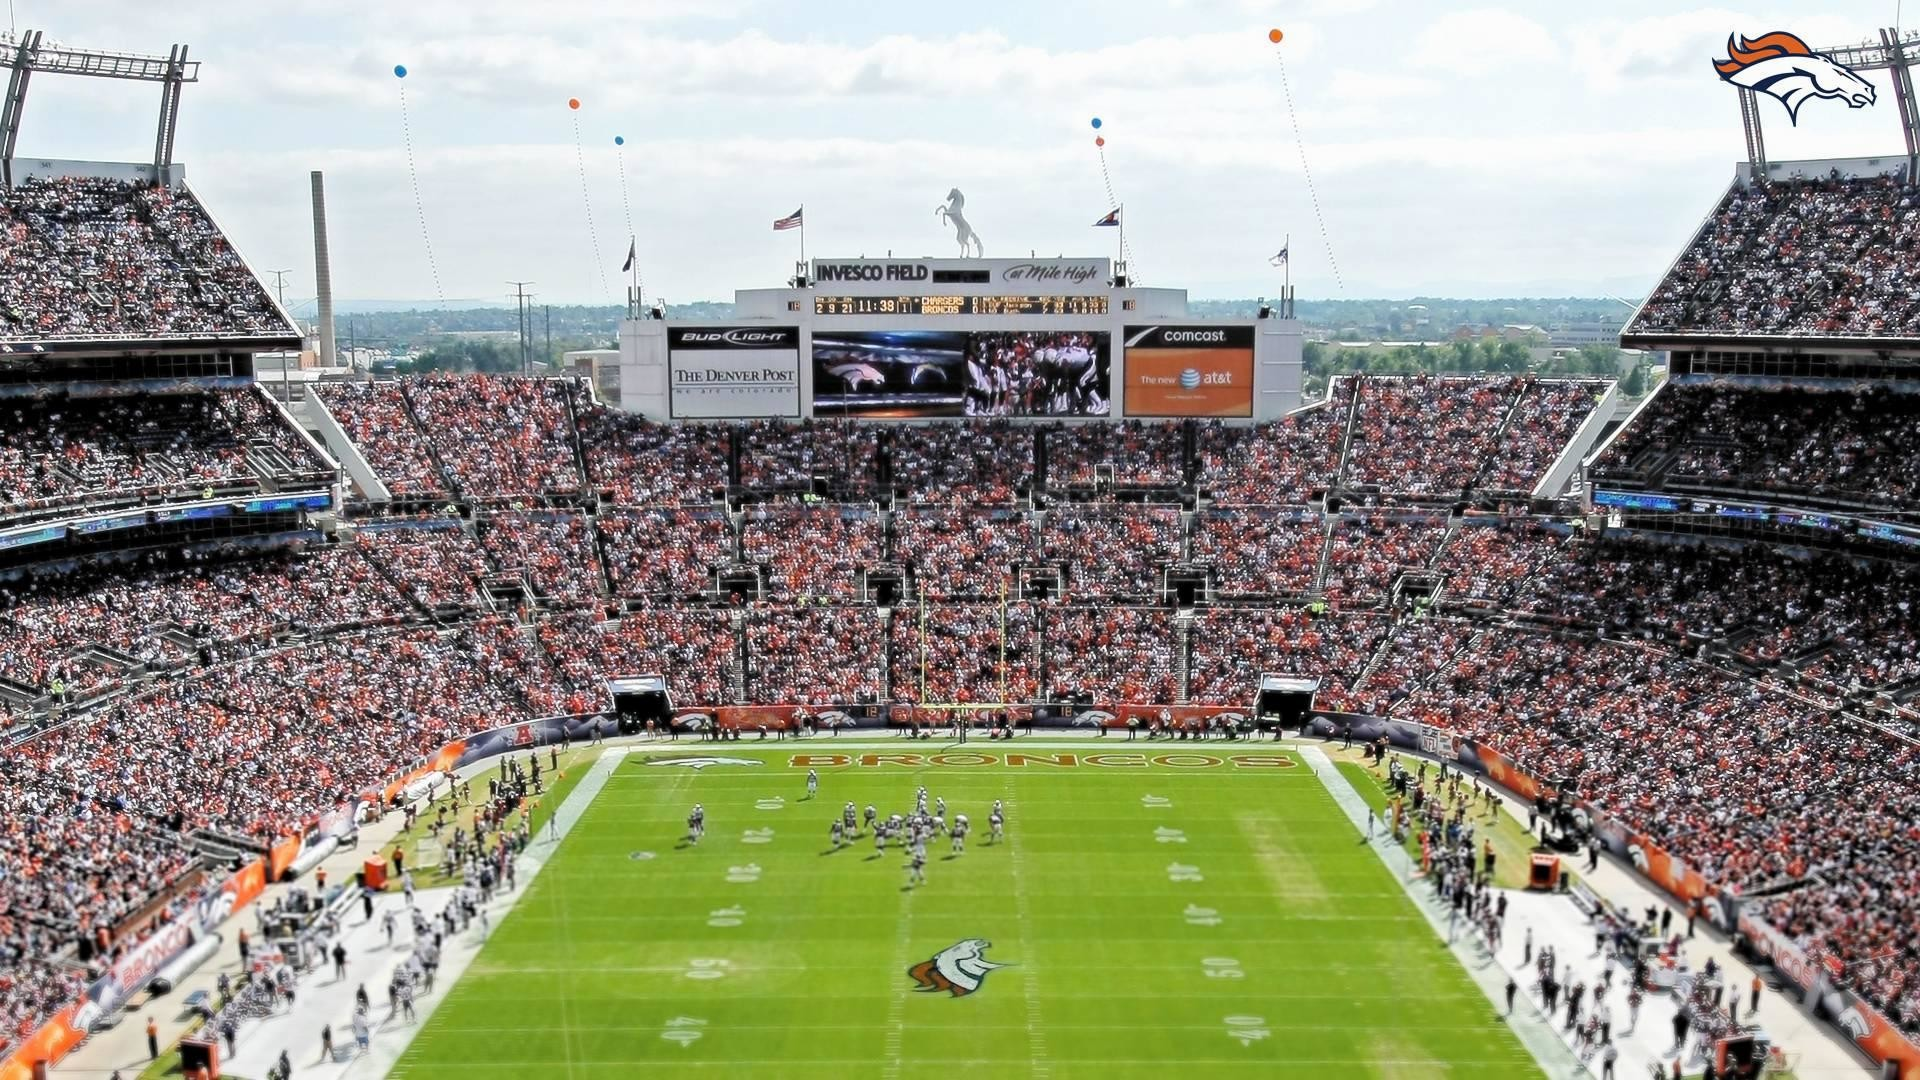 Denver-Broncos-Stadium-Background